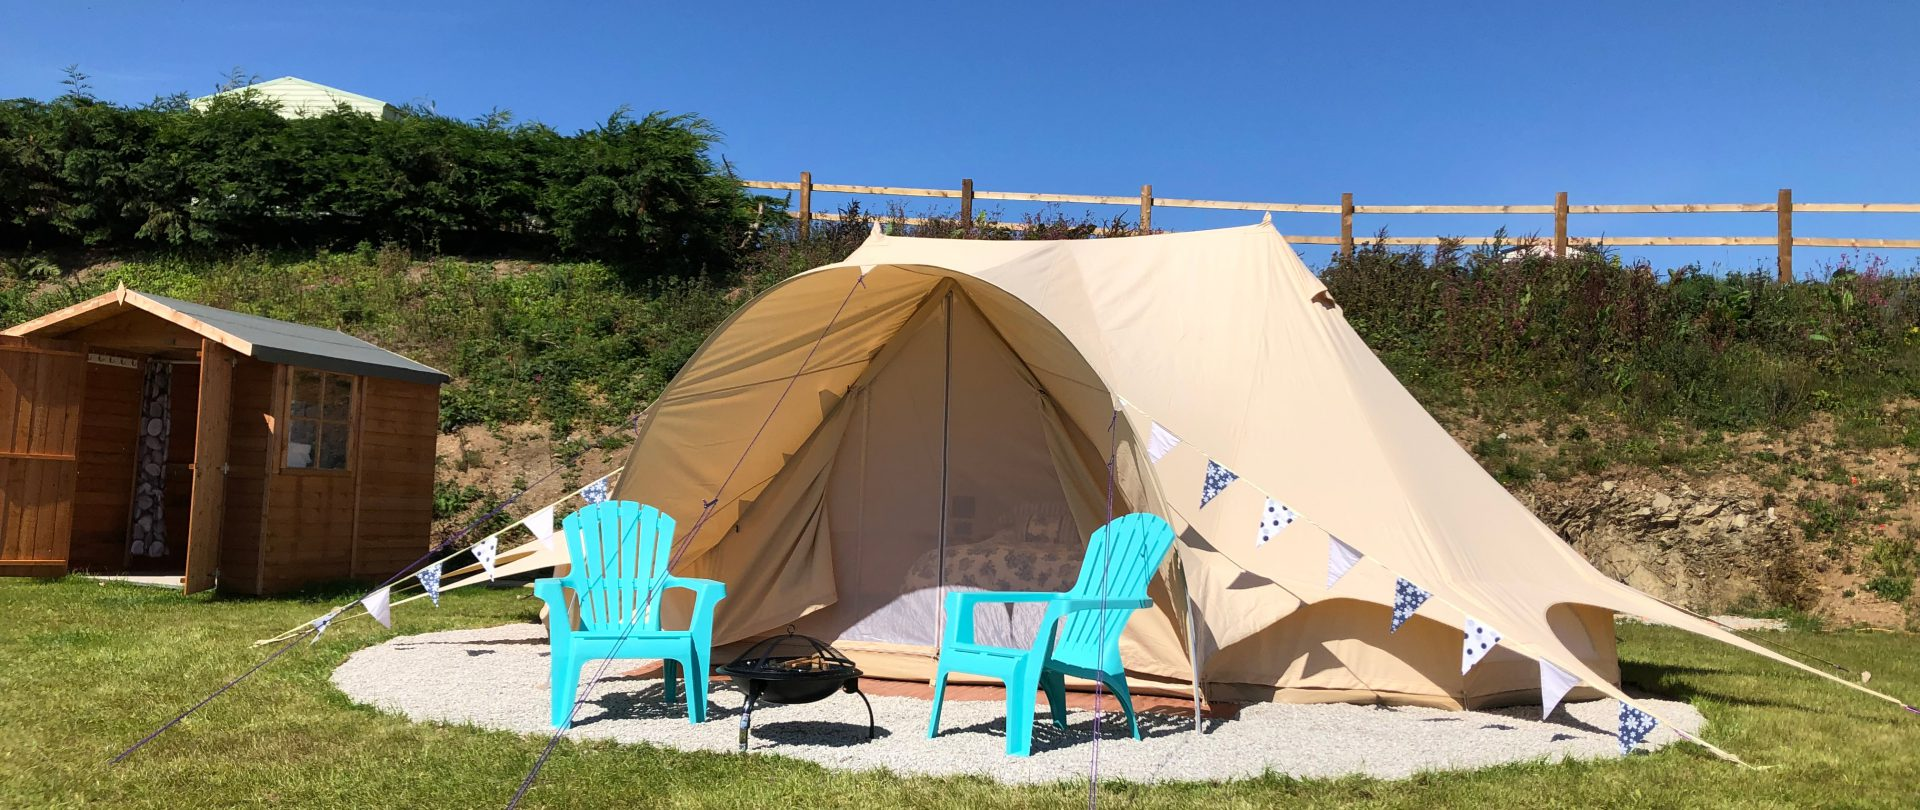 Bell Tent Camping: The Oaks Holiday Park